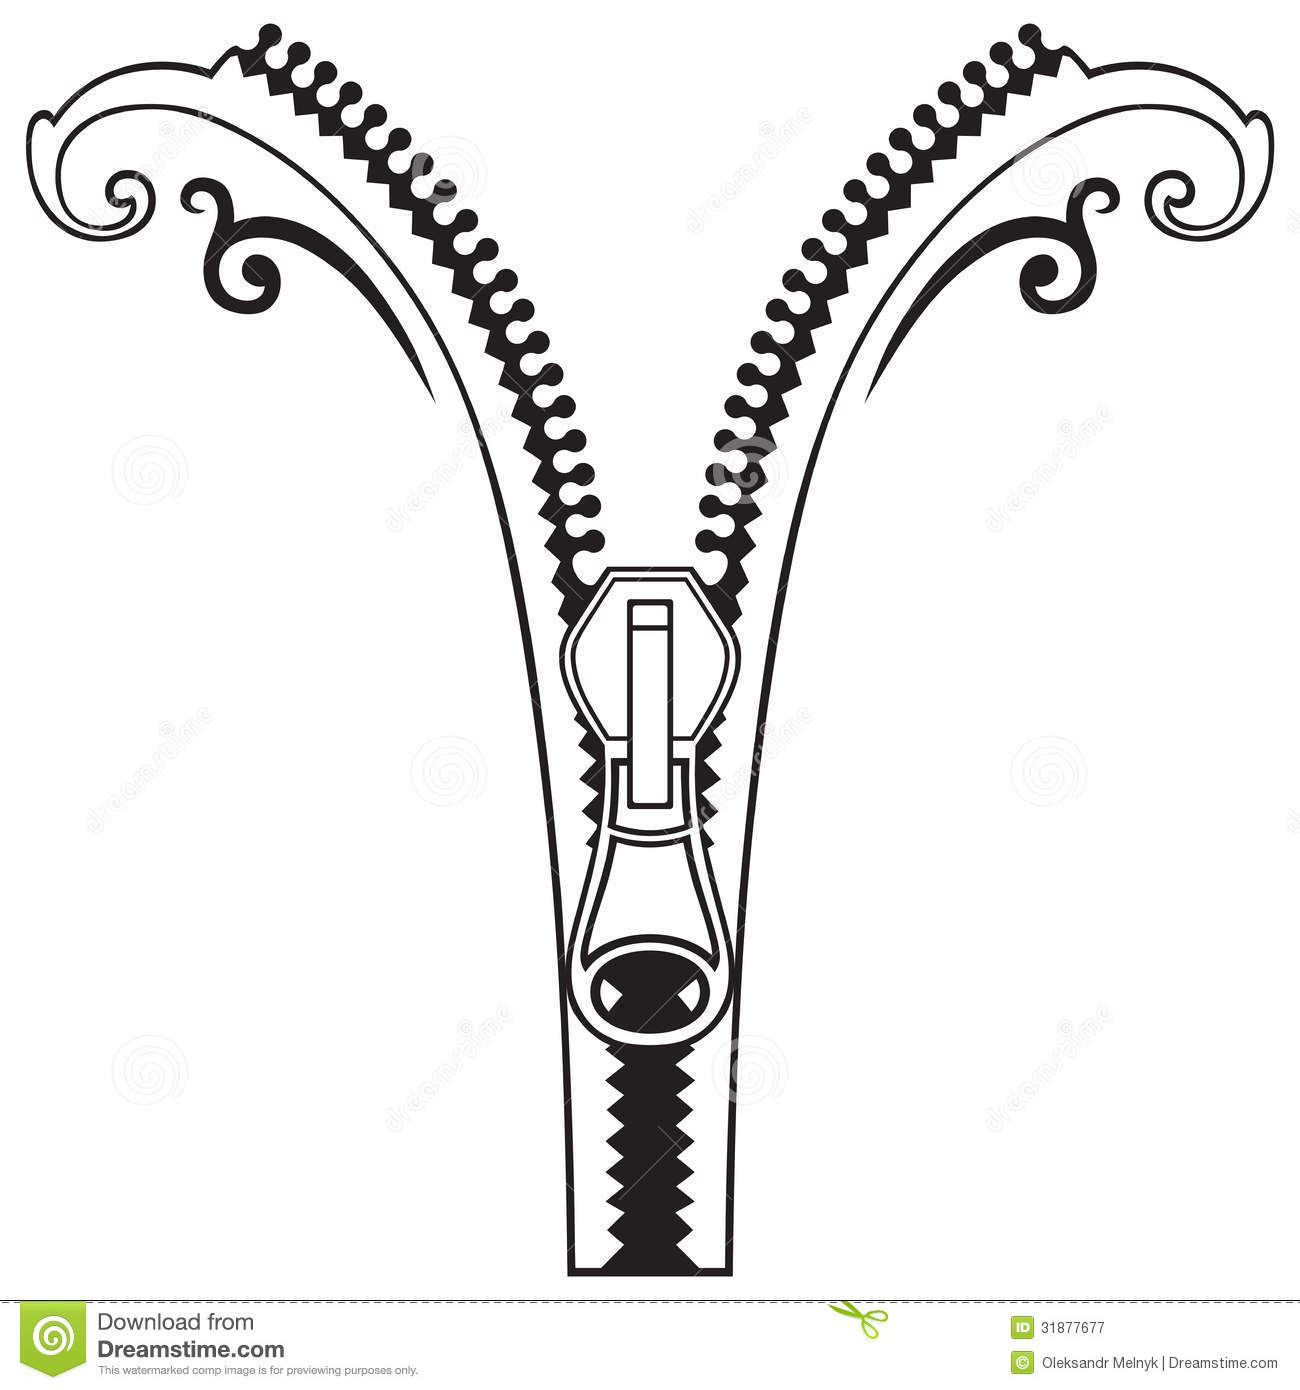 Zipper black symbols stock vector. Illustration of lock